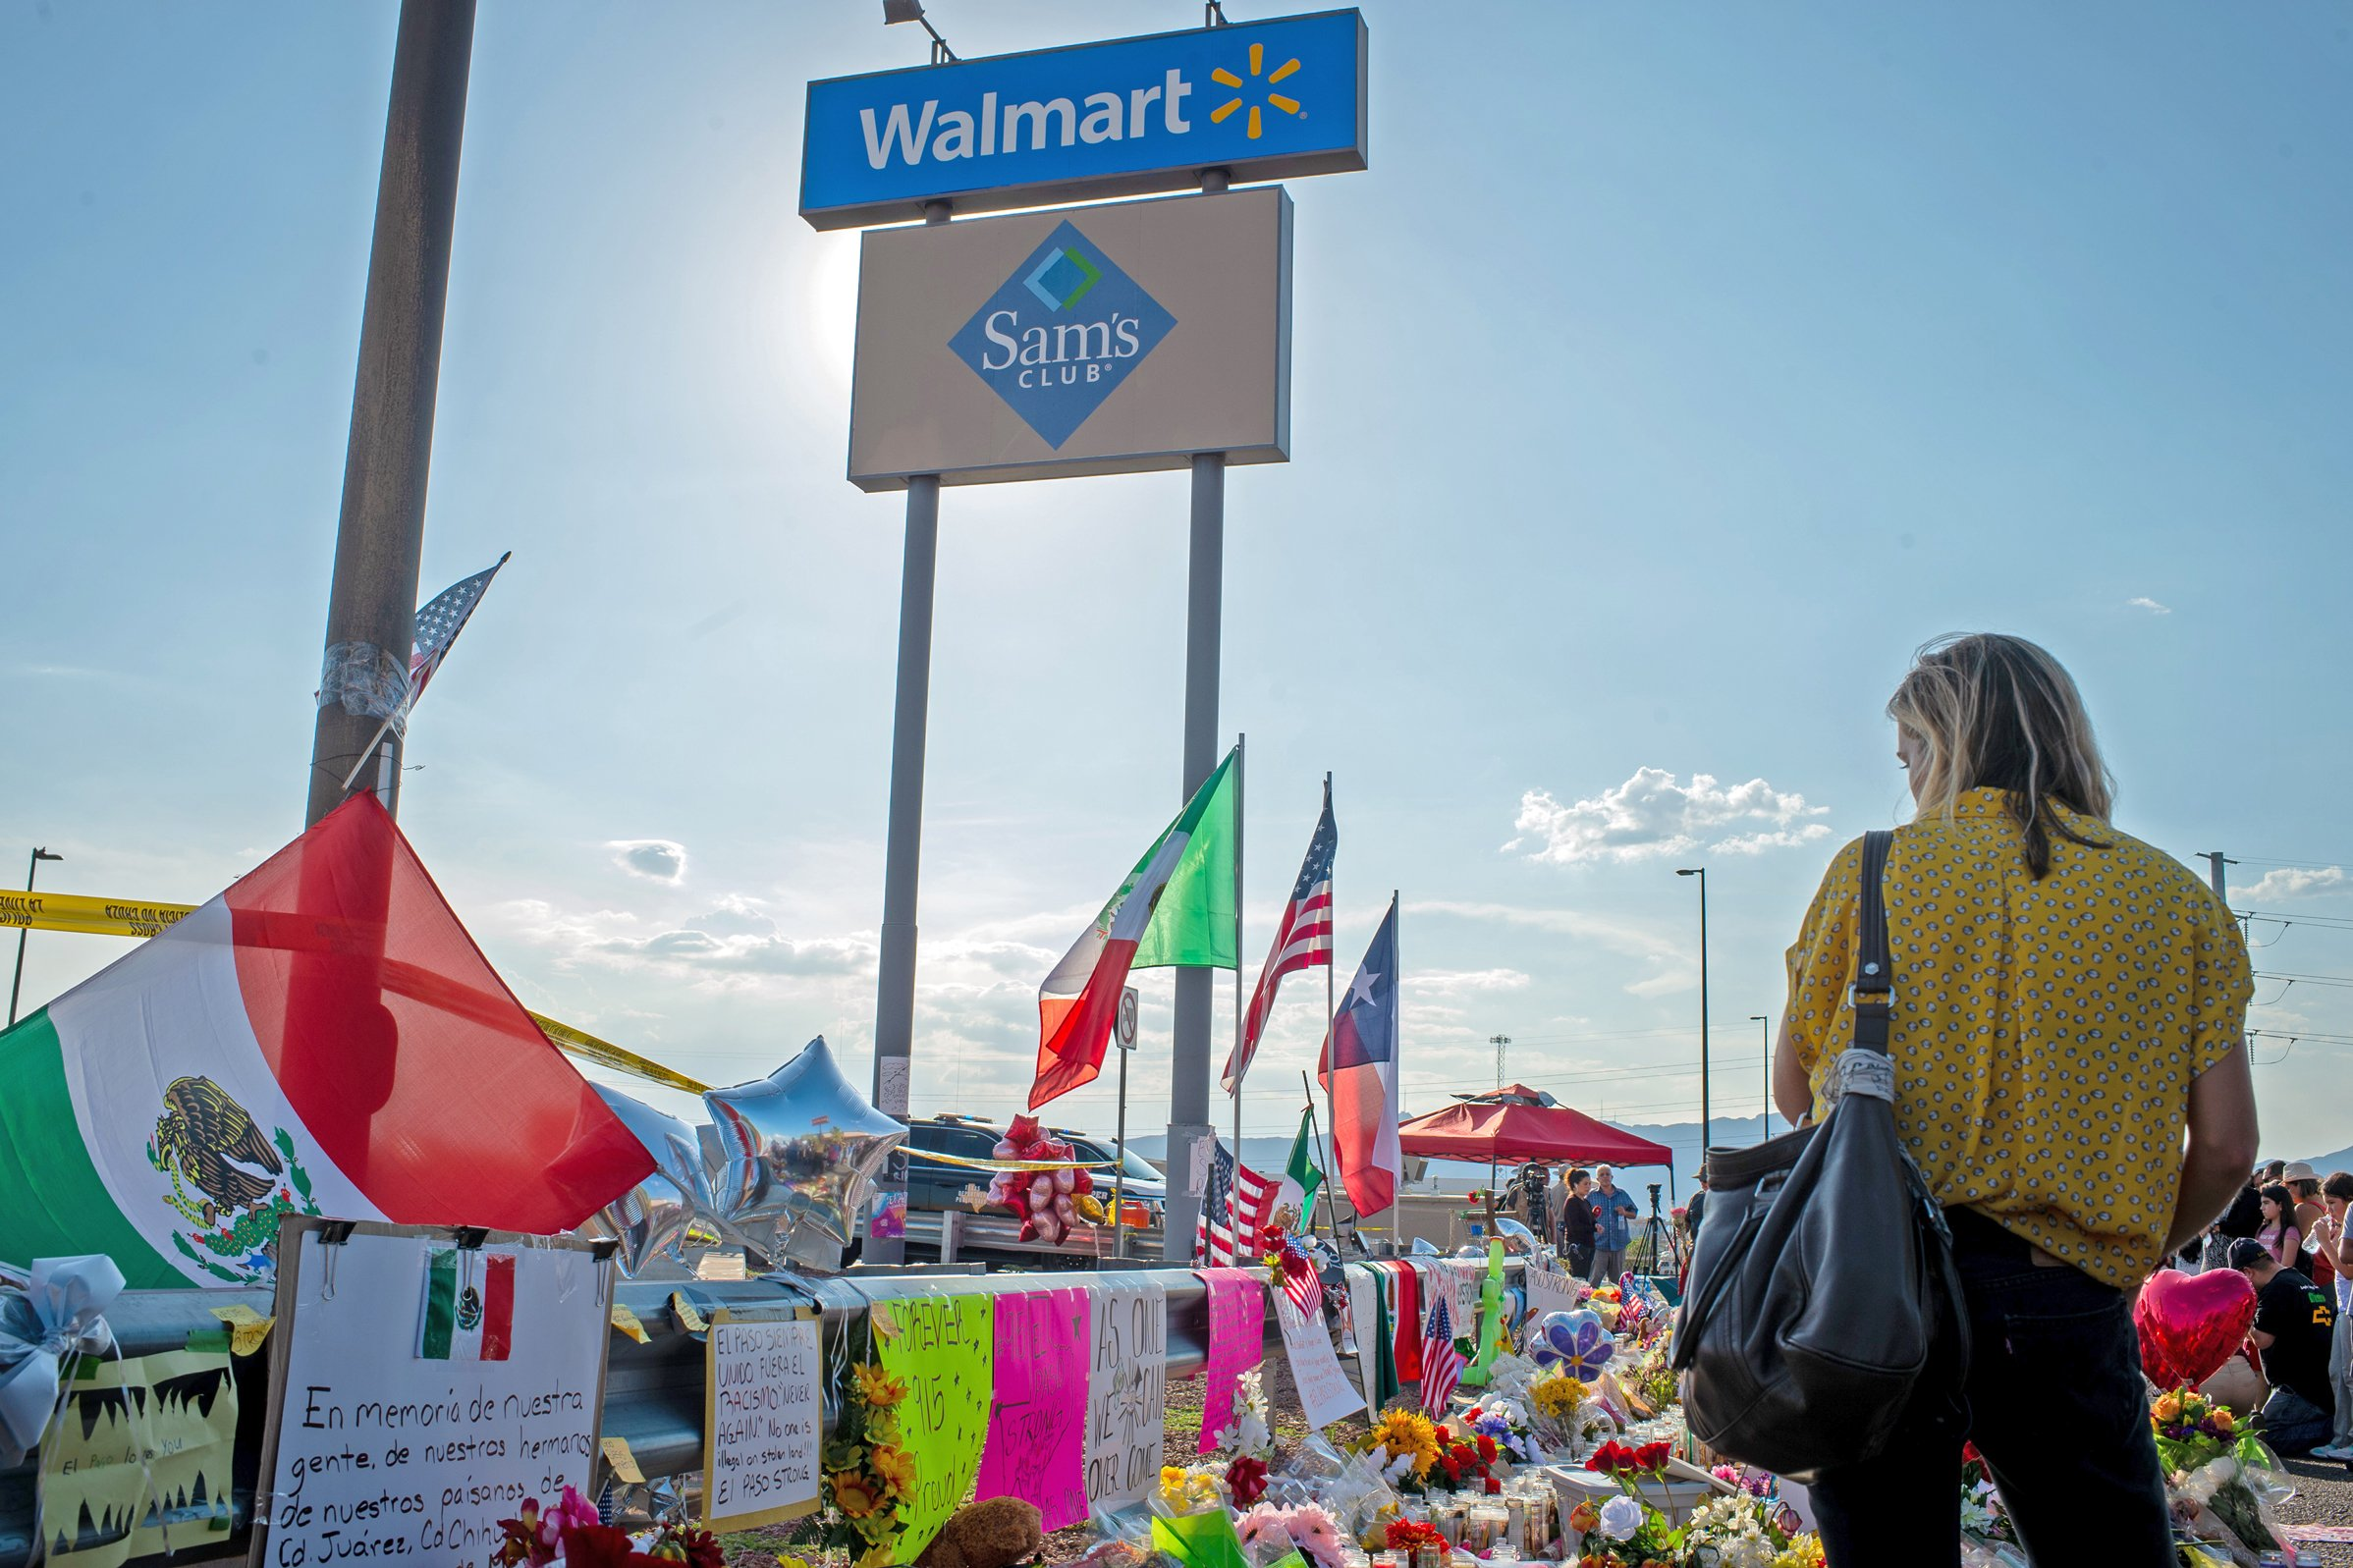 Walmart content to be No. 4 in U.S. gun sales—and might do better even lower